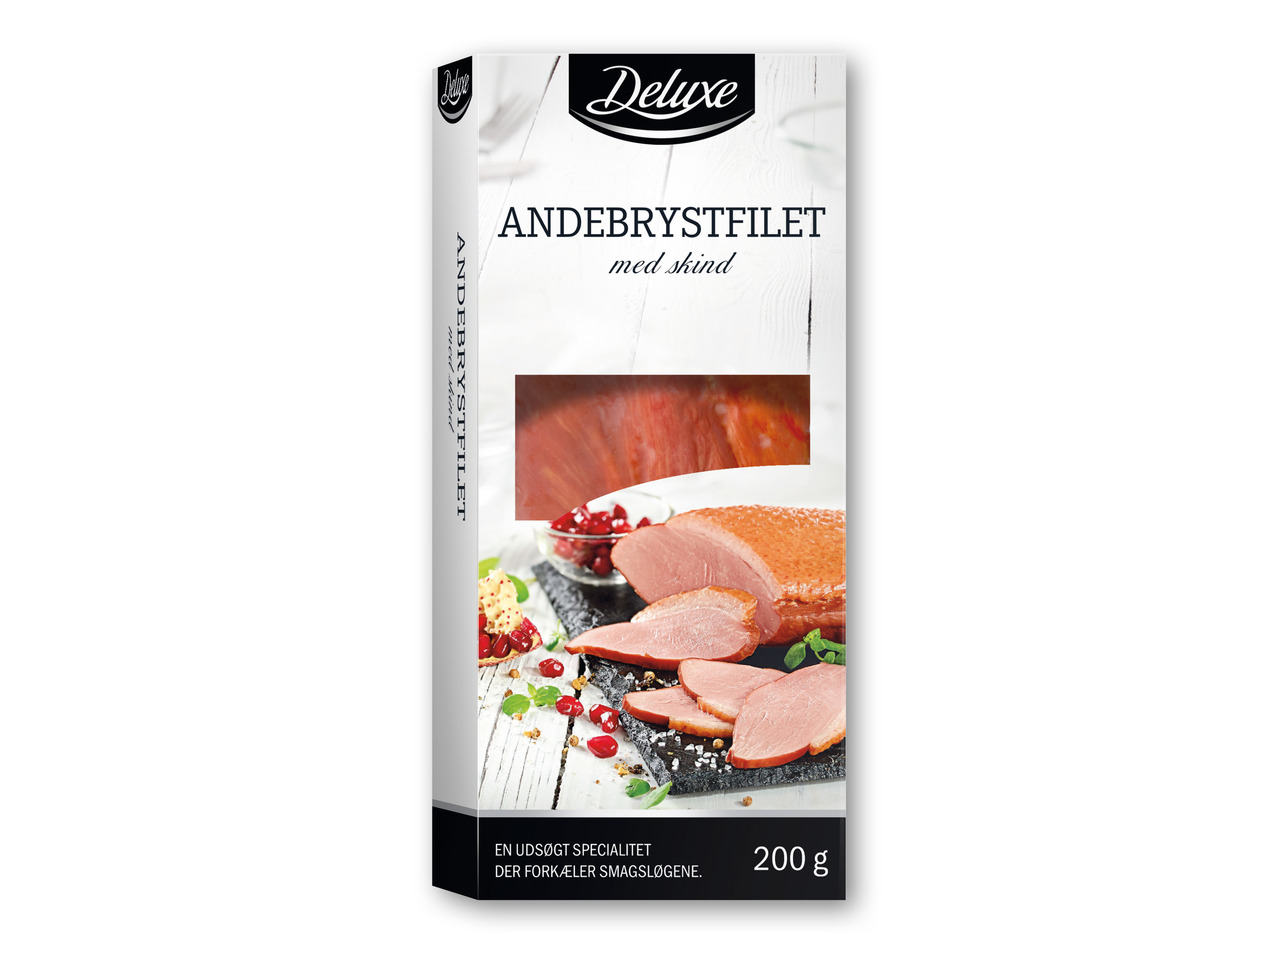 DELUXE Røget andebryst